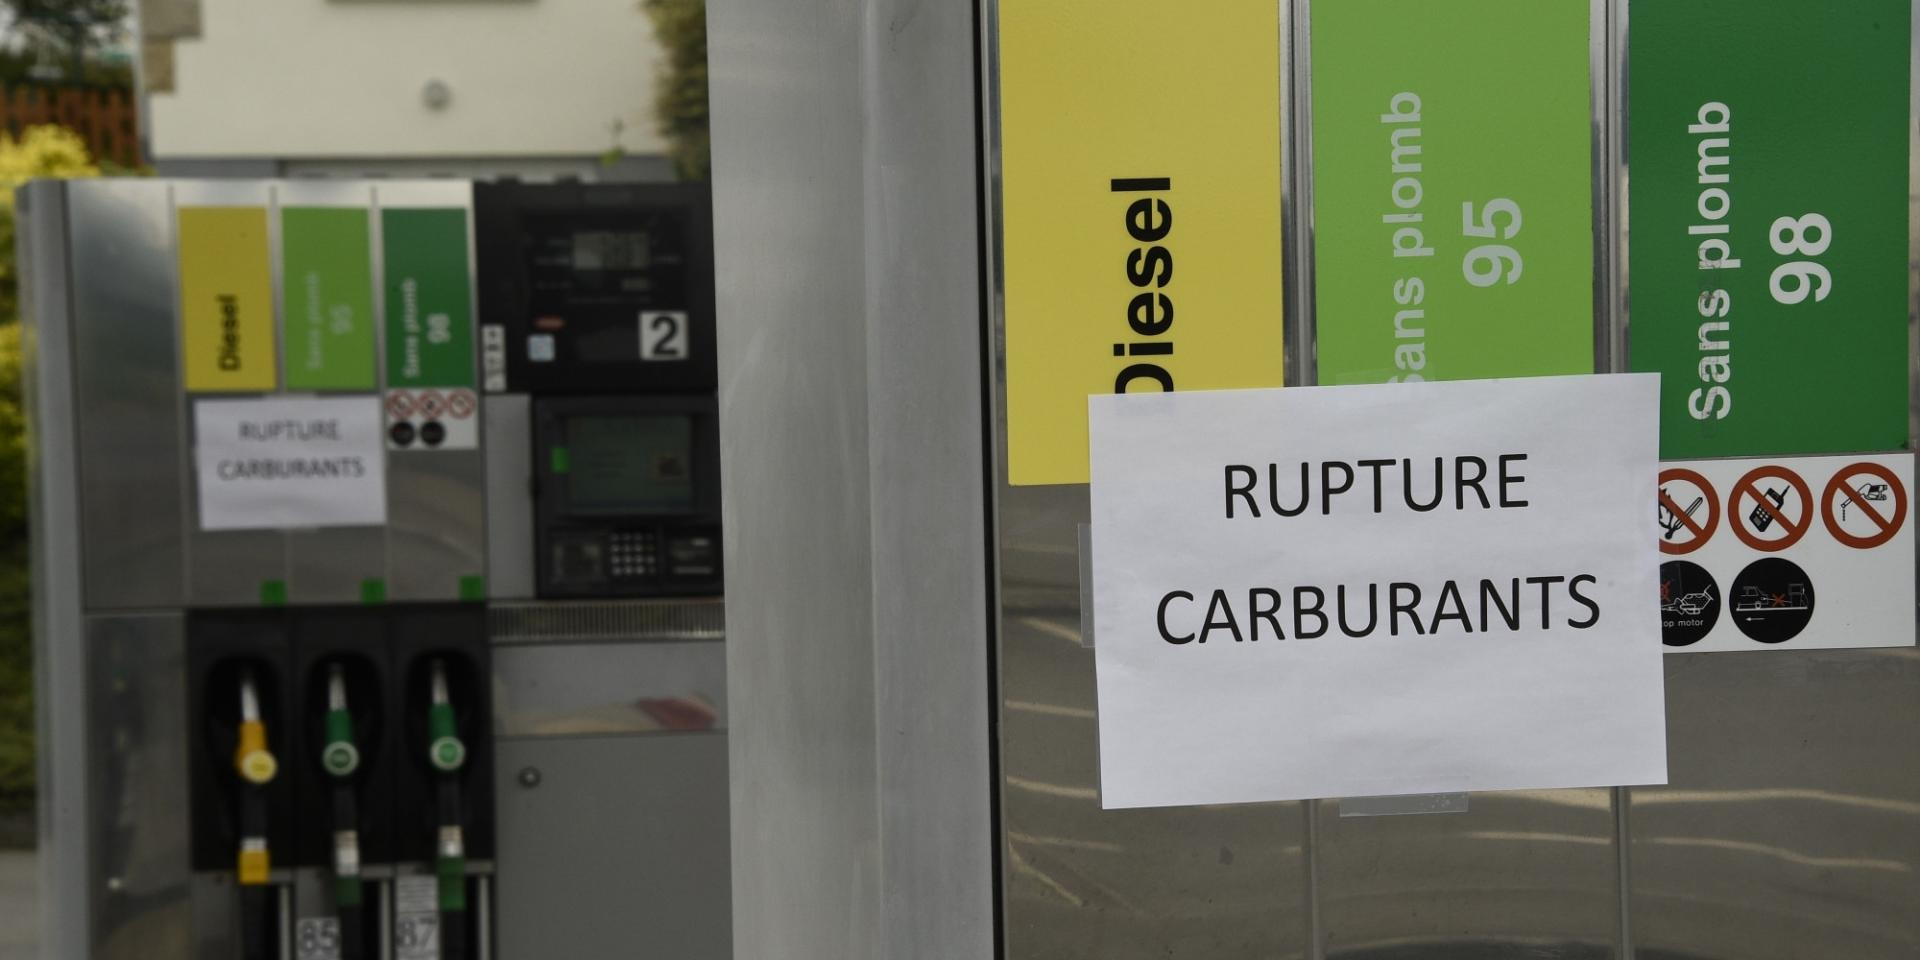 S0 transport de carburant la greve se poursuit la penurie guette a paris 404234